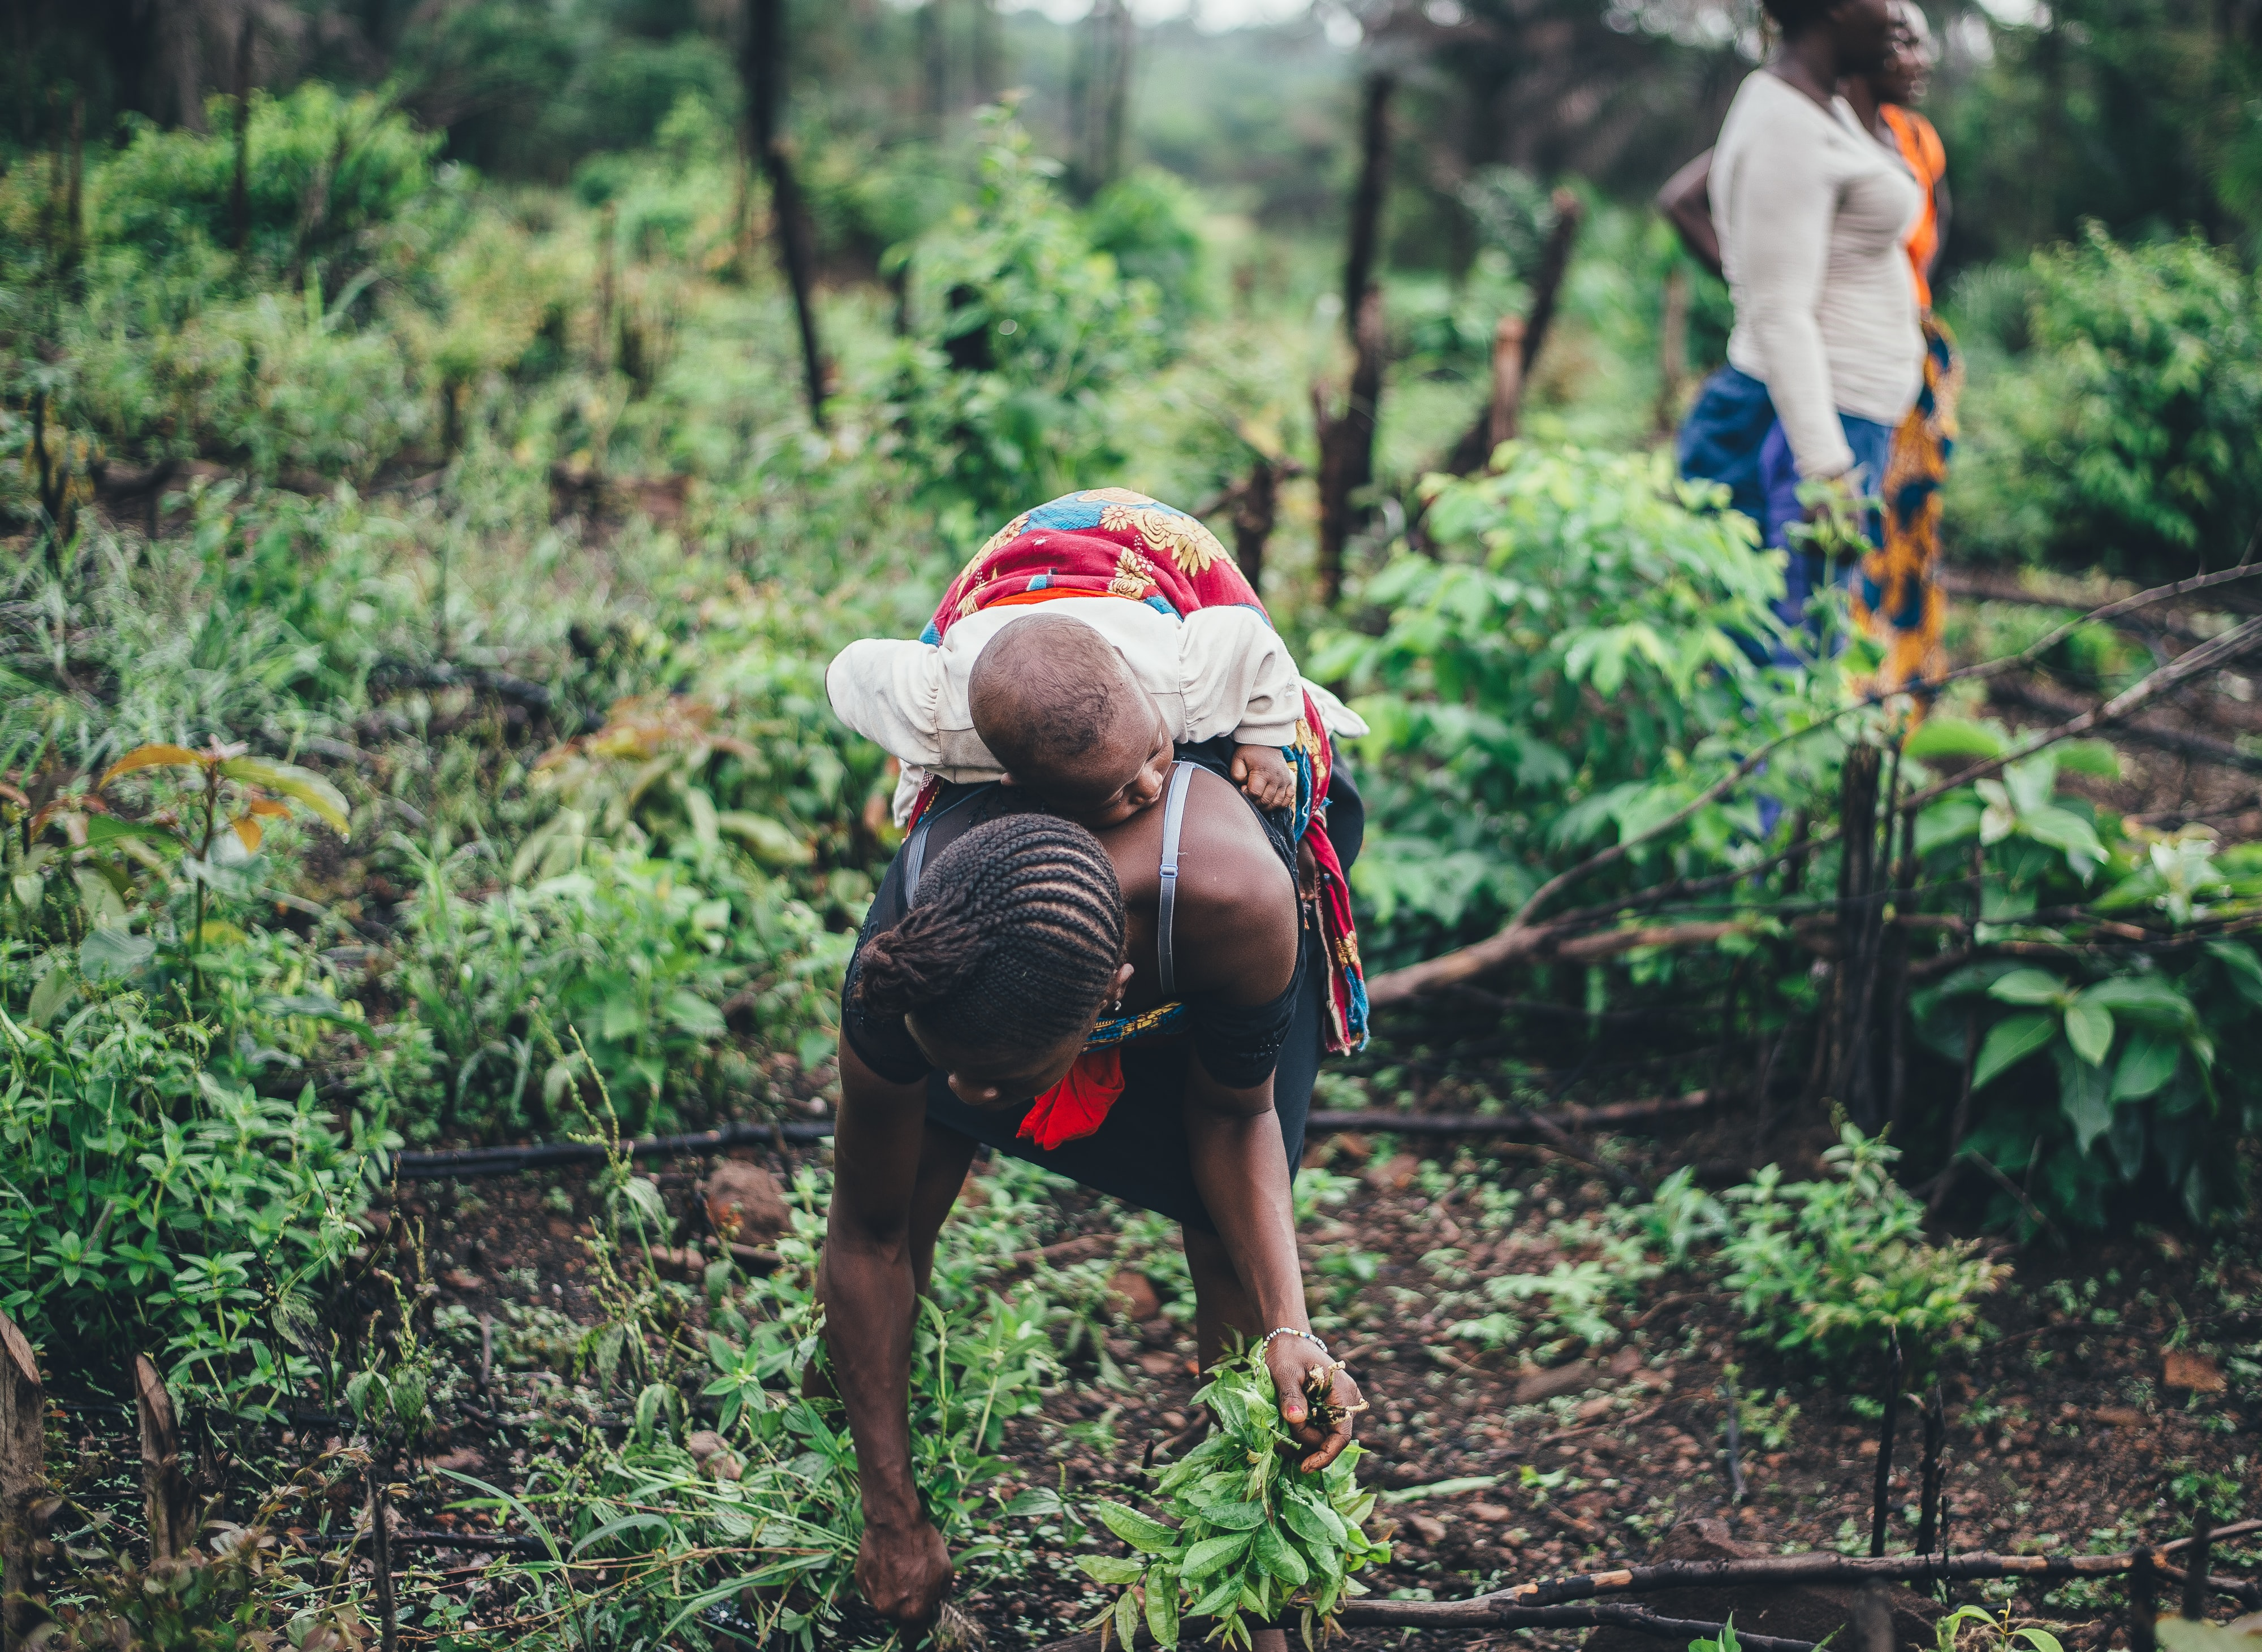 woman carrying a kid while picking plants